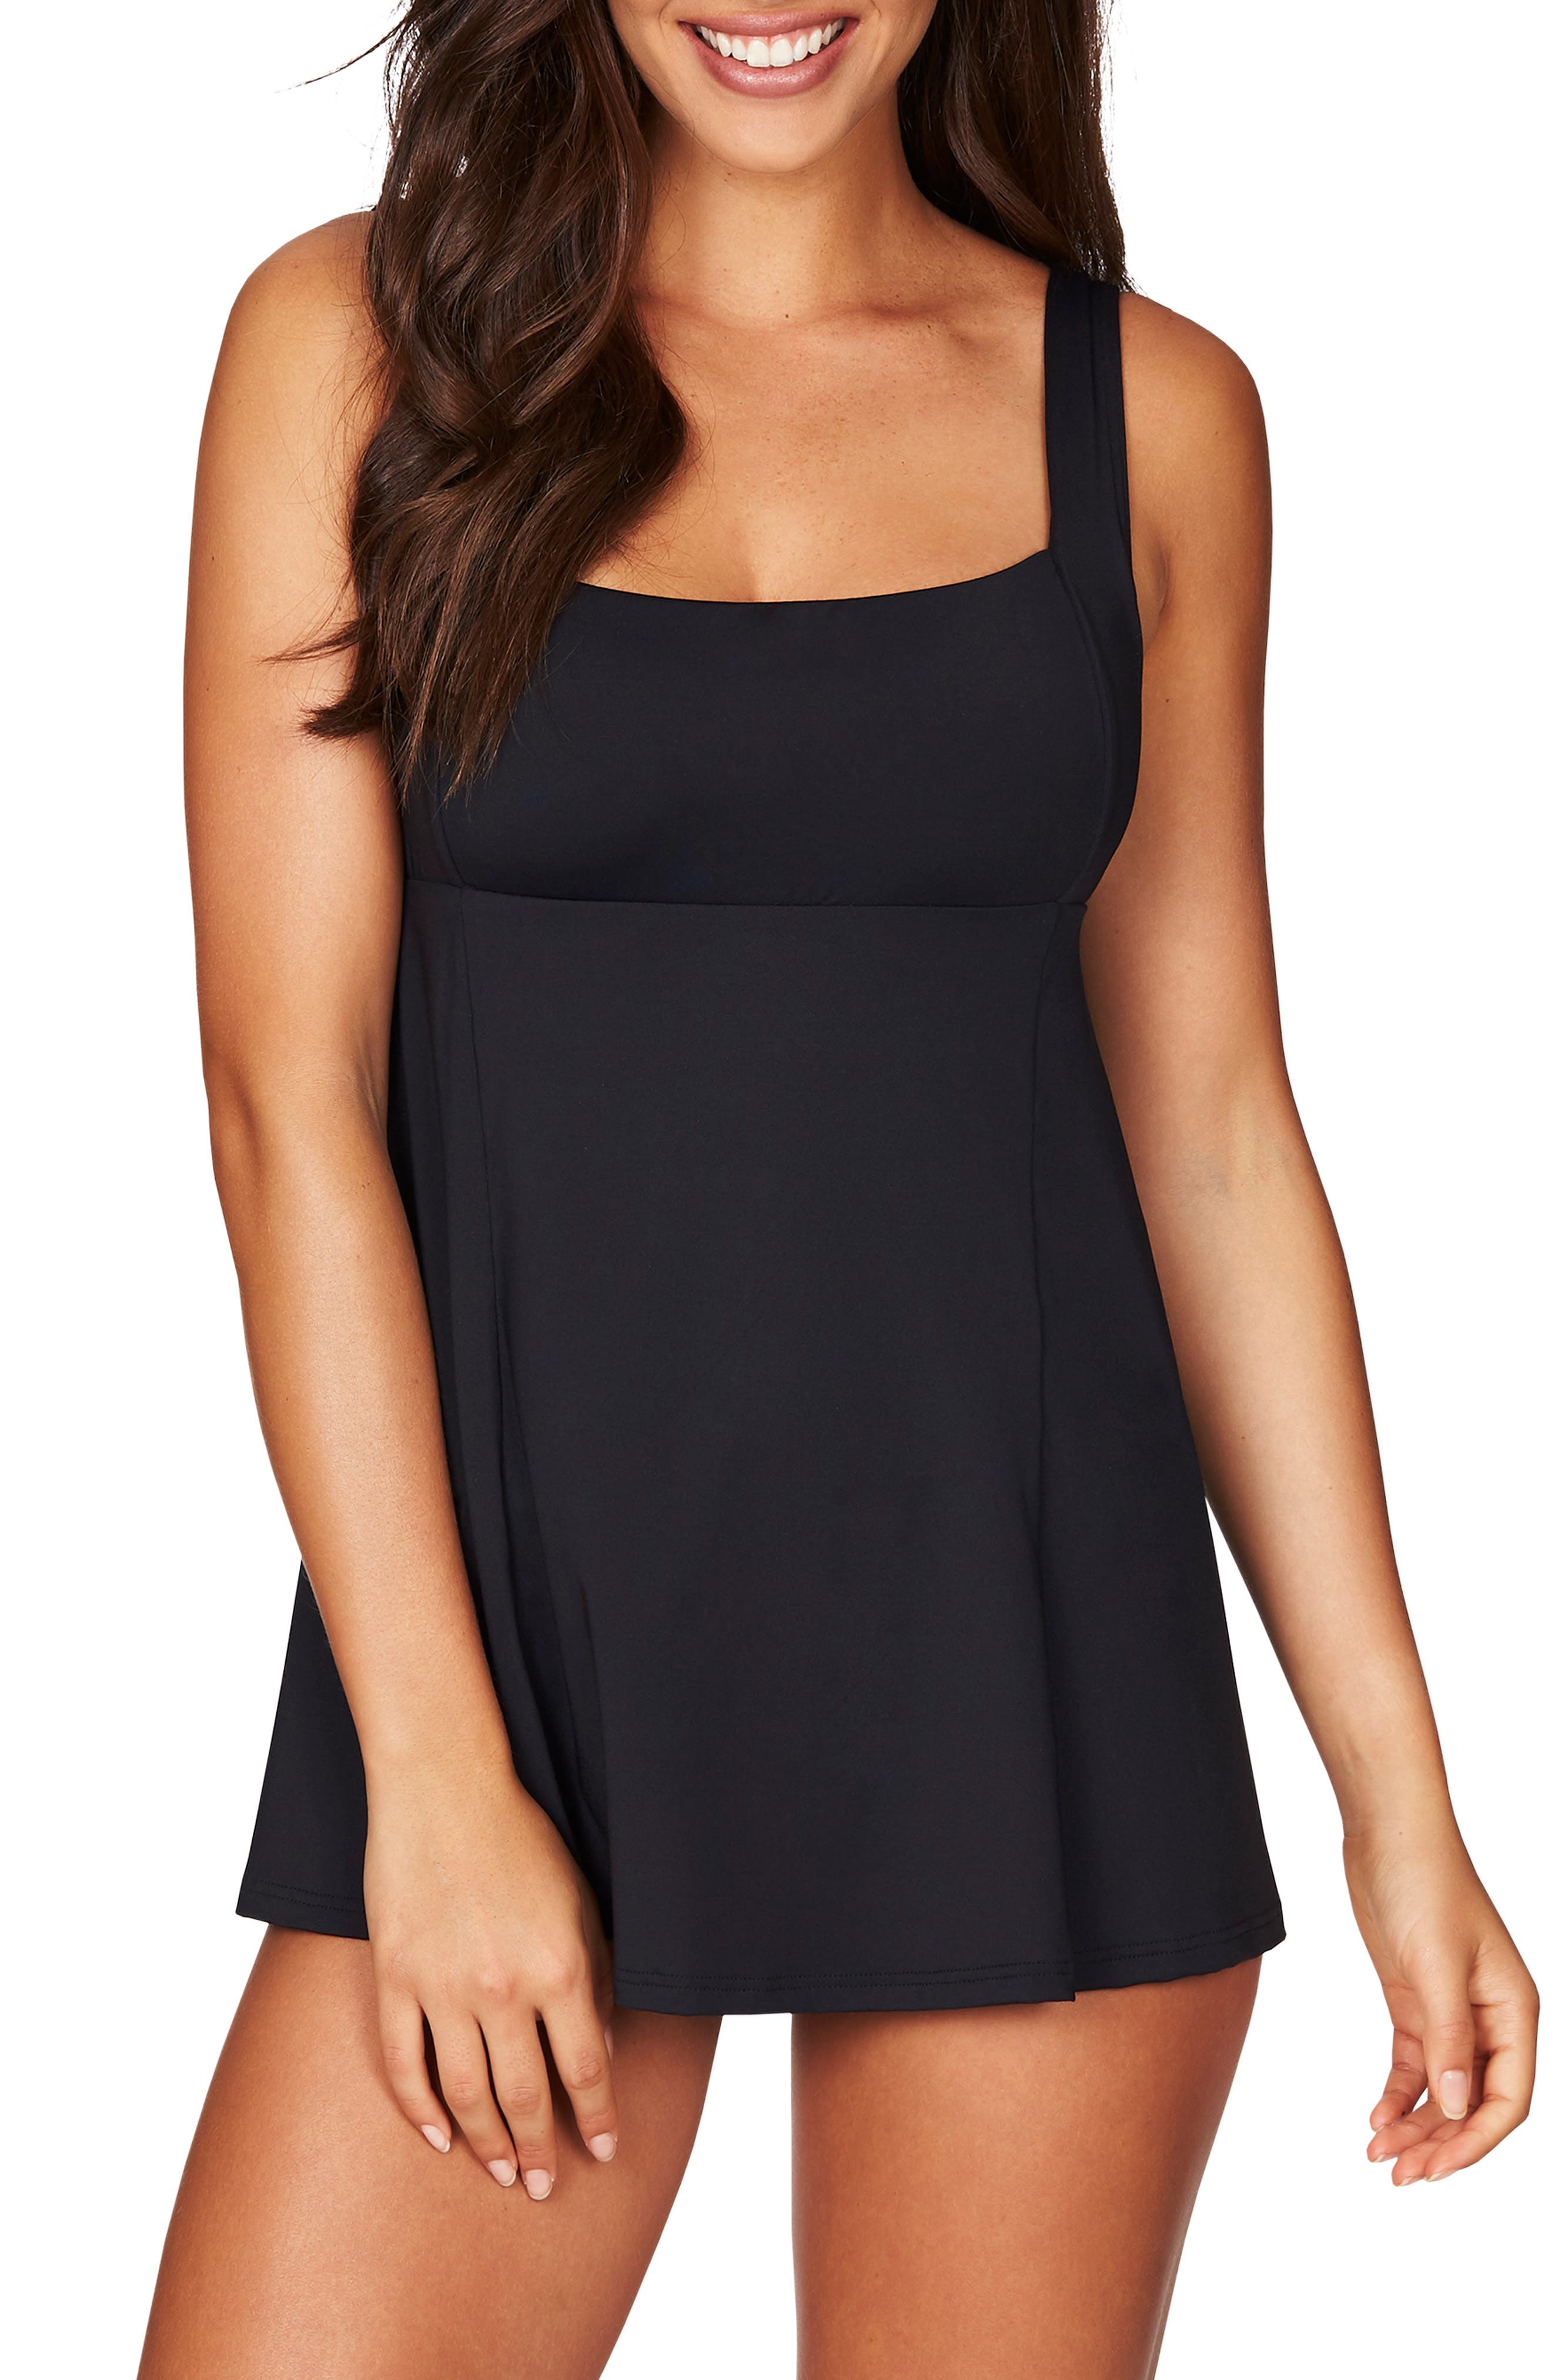 Sea Level Skirted One-Piece Swimsuit, Black